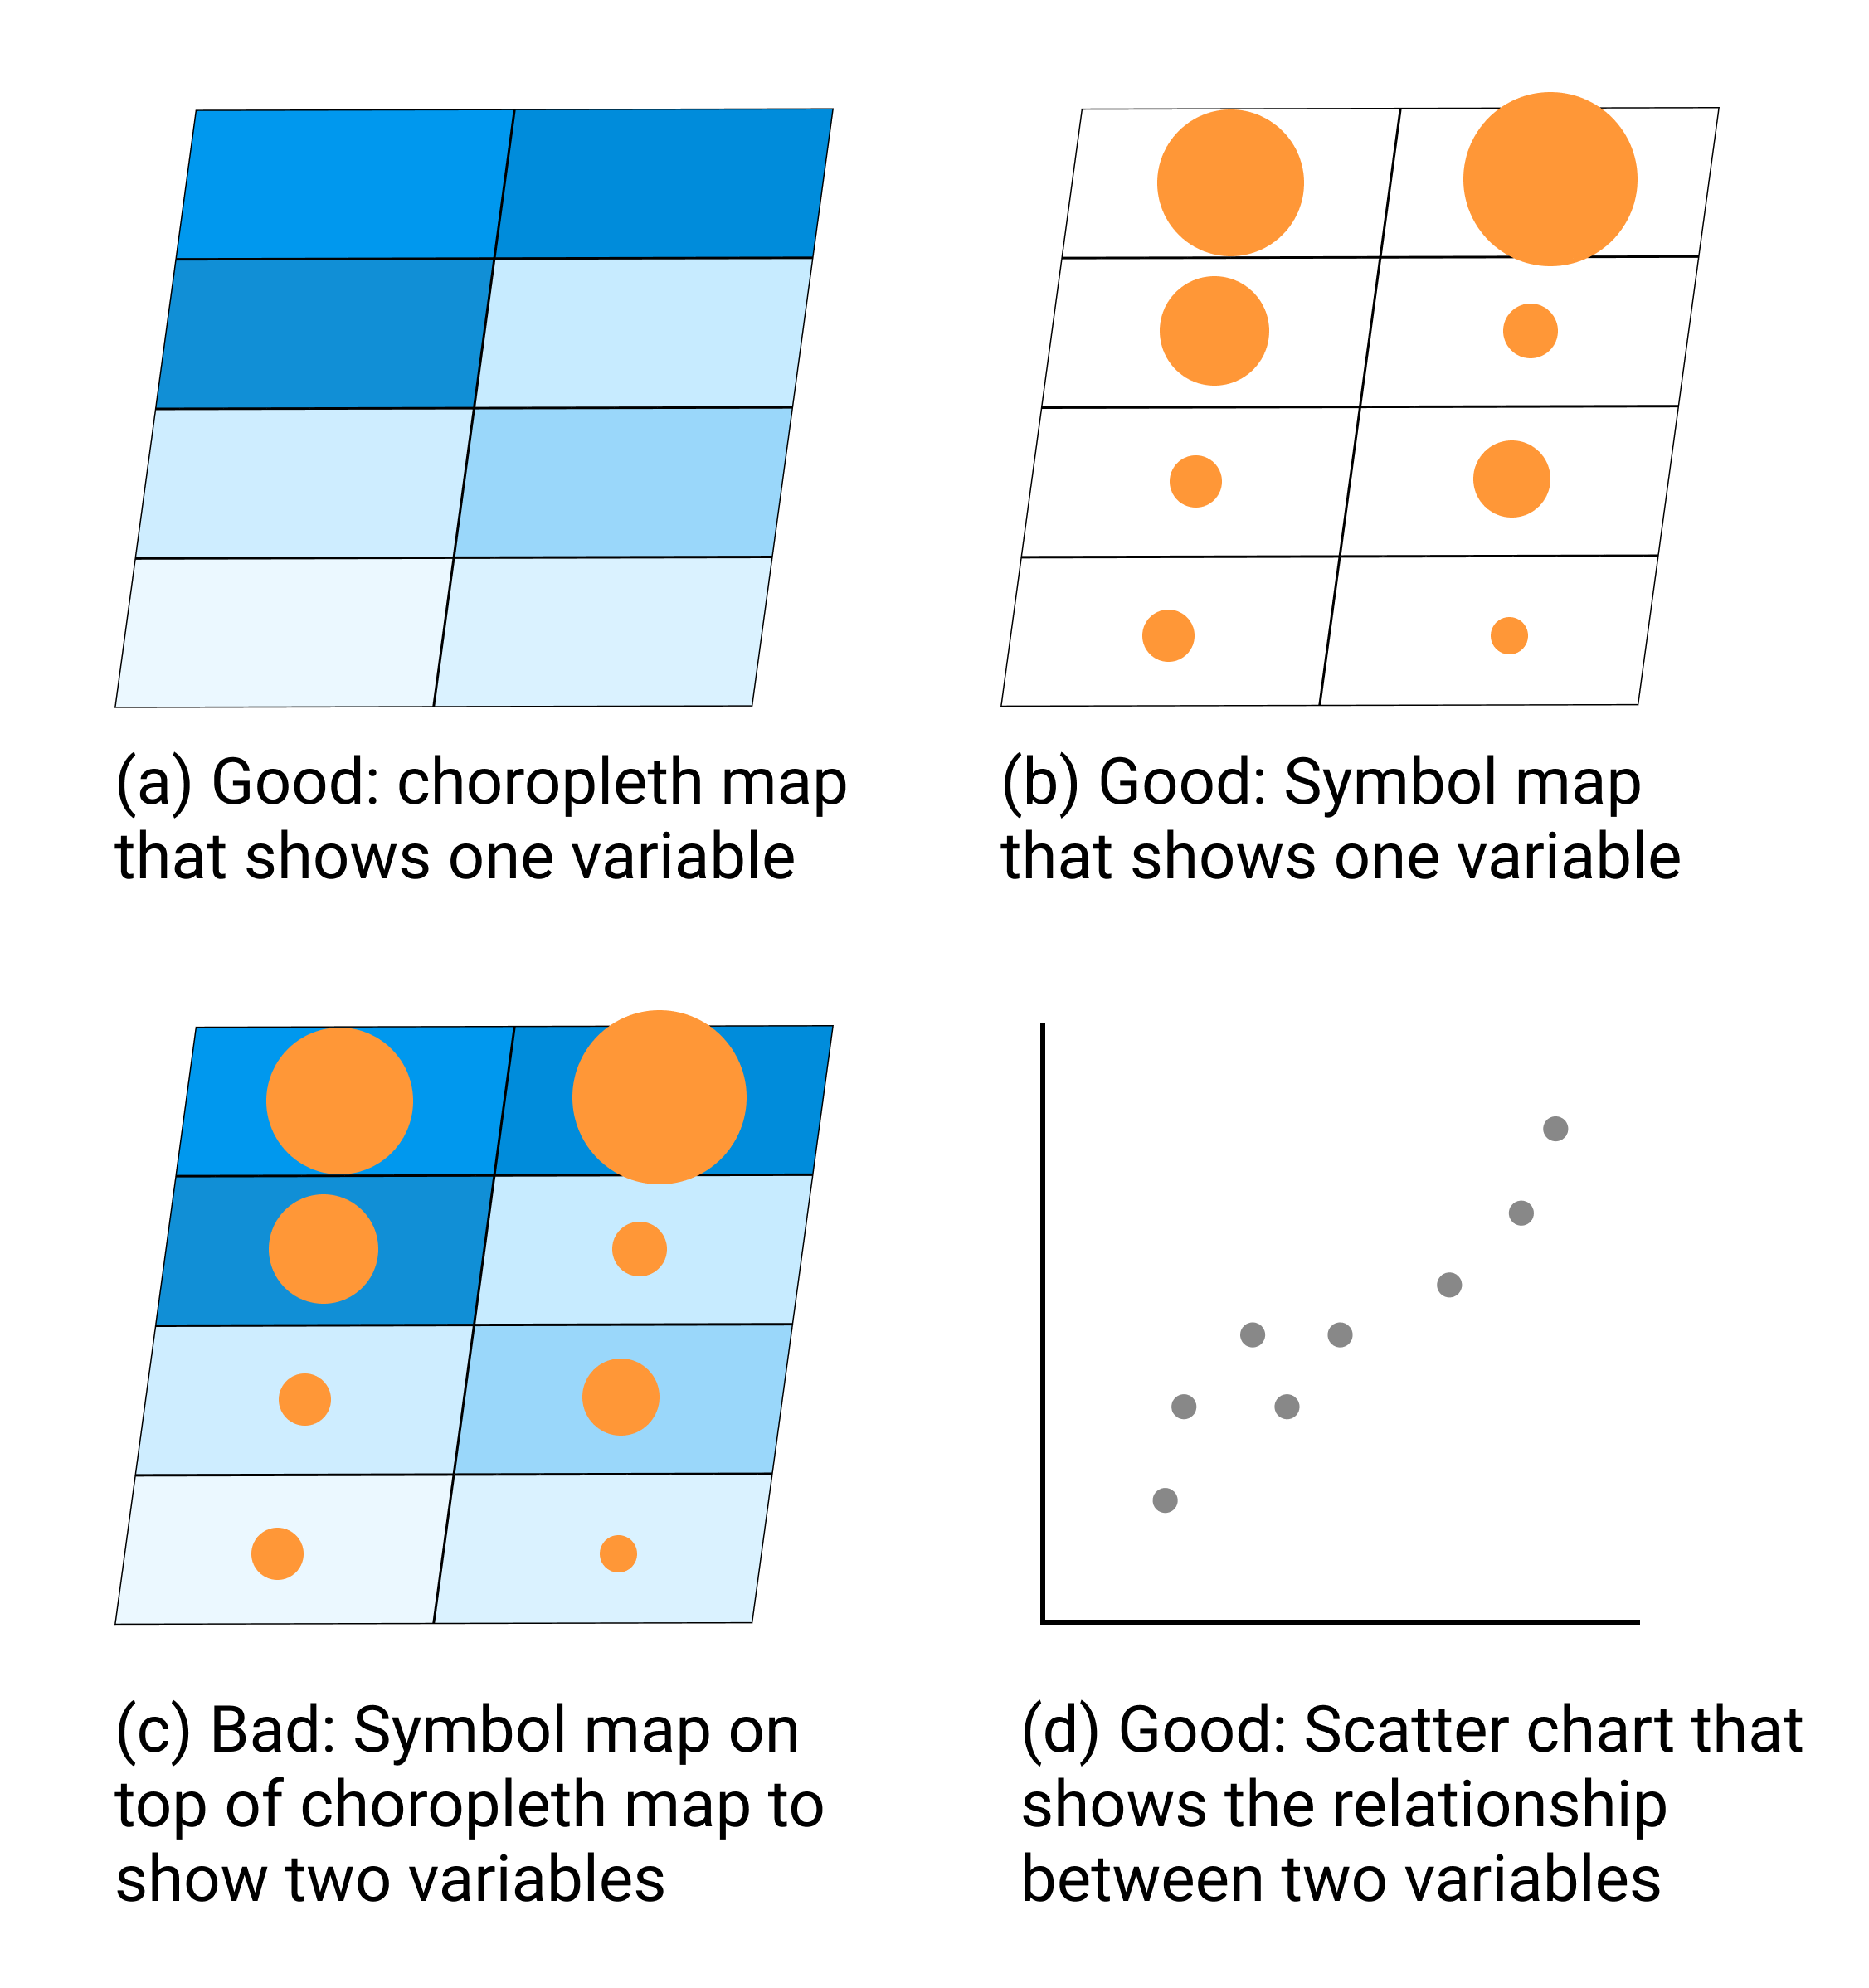 To compare two variables, such as income and education, avoid placing a symbol point map on top of a choropleth map. Instead, create a scatter chart, and consider pairing it with a choropleth map of one variable.